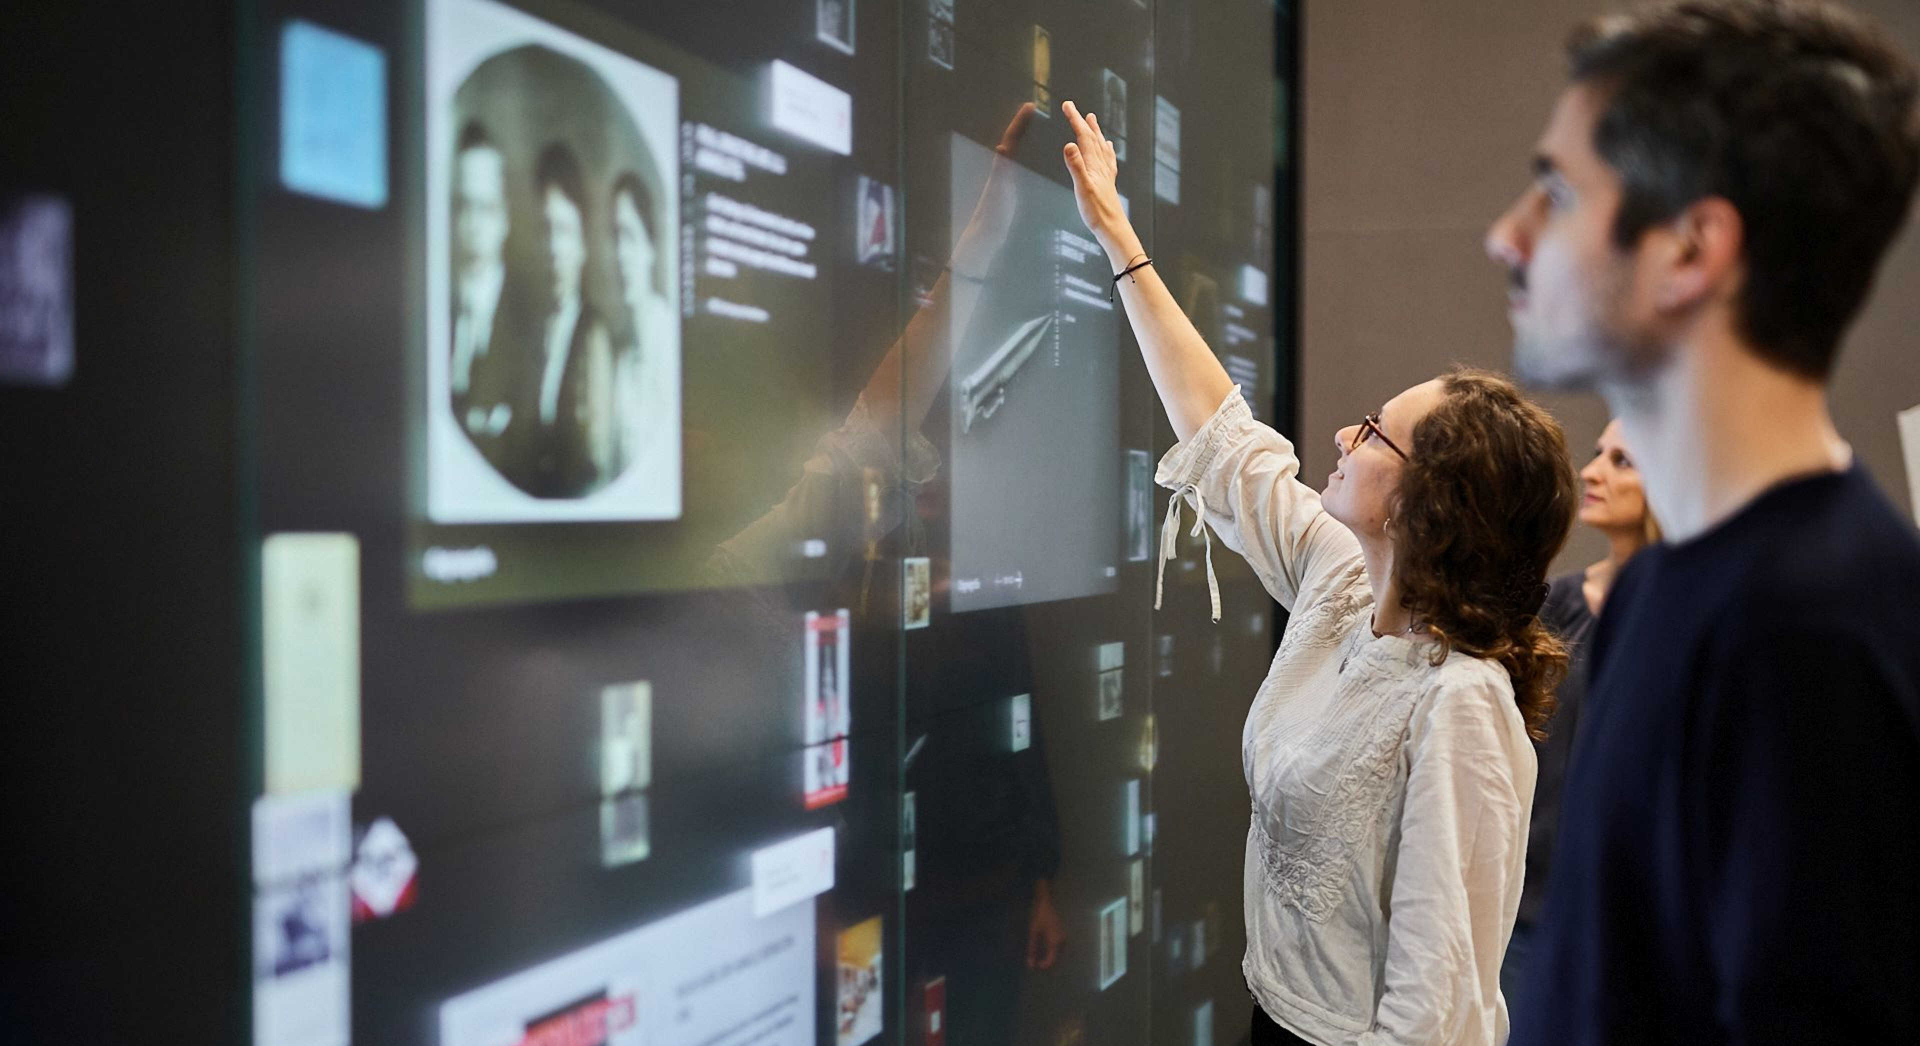 People touch a large touch screen wall that displays documents and objects